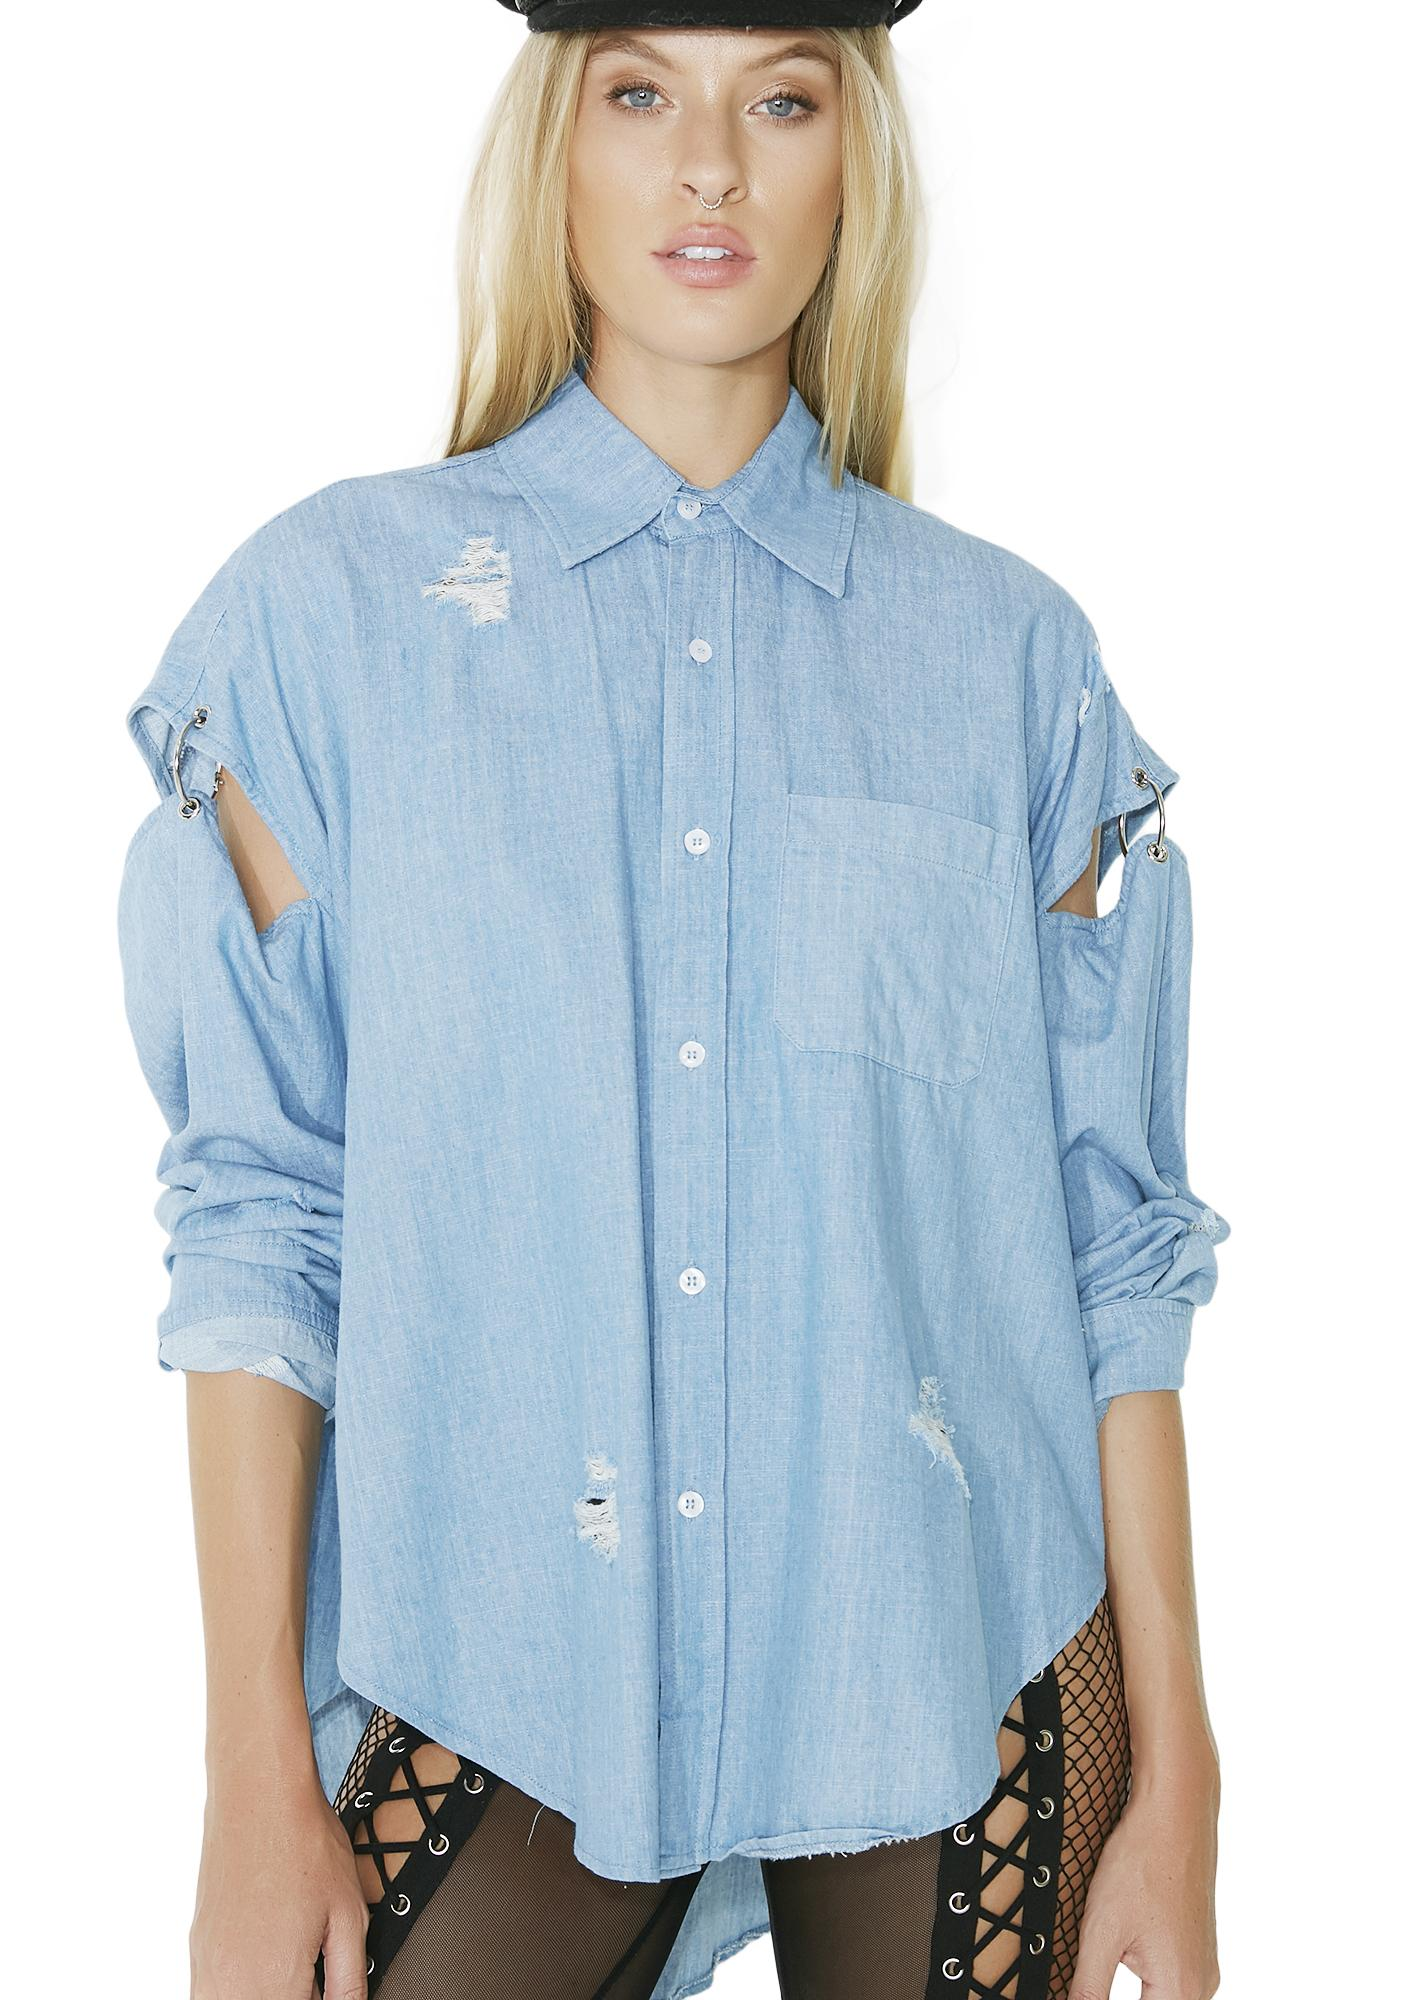 Wandering Westward Denim Shirt